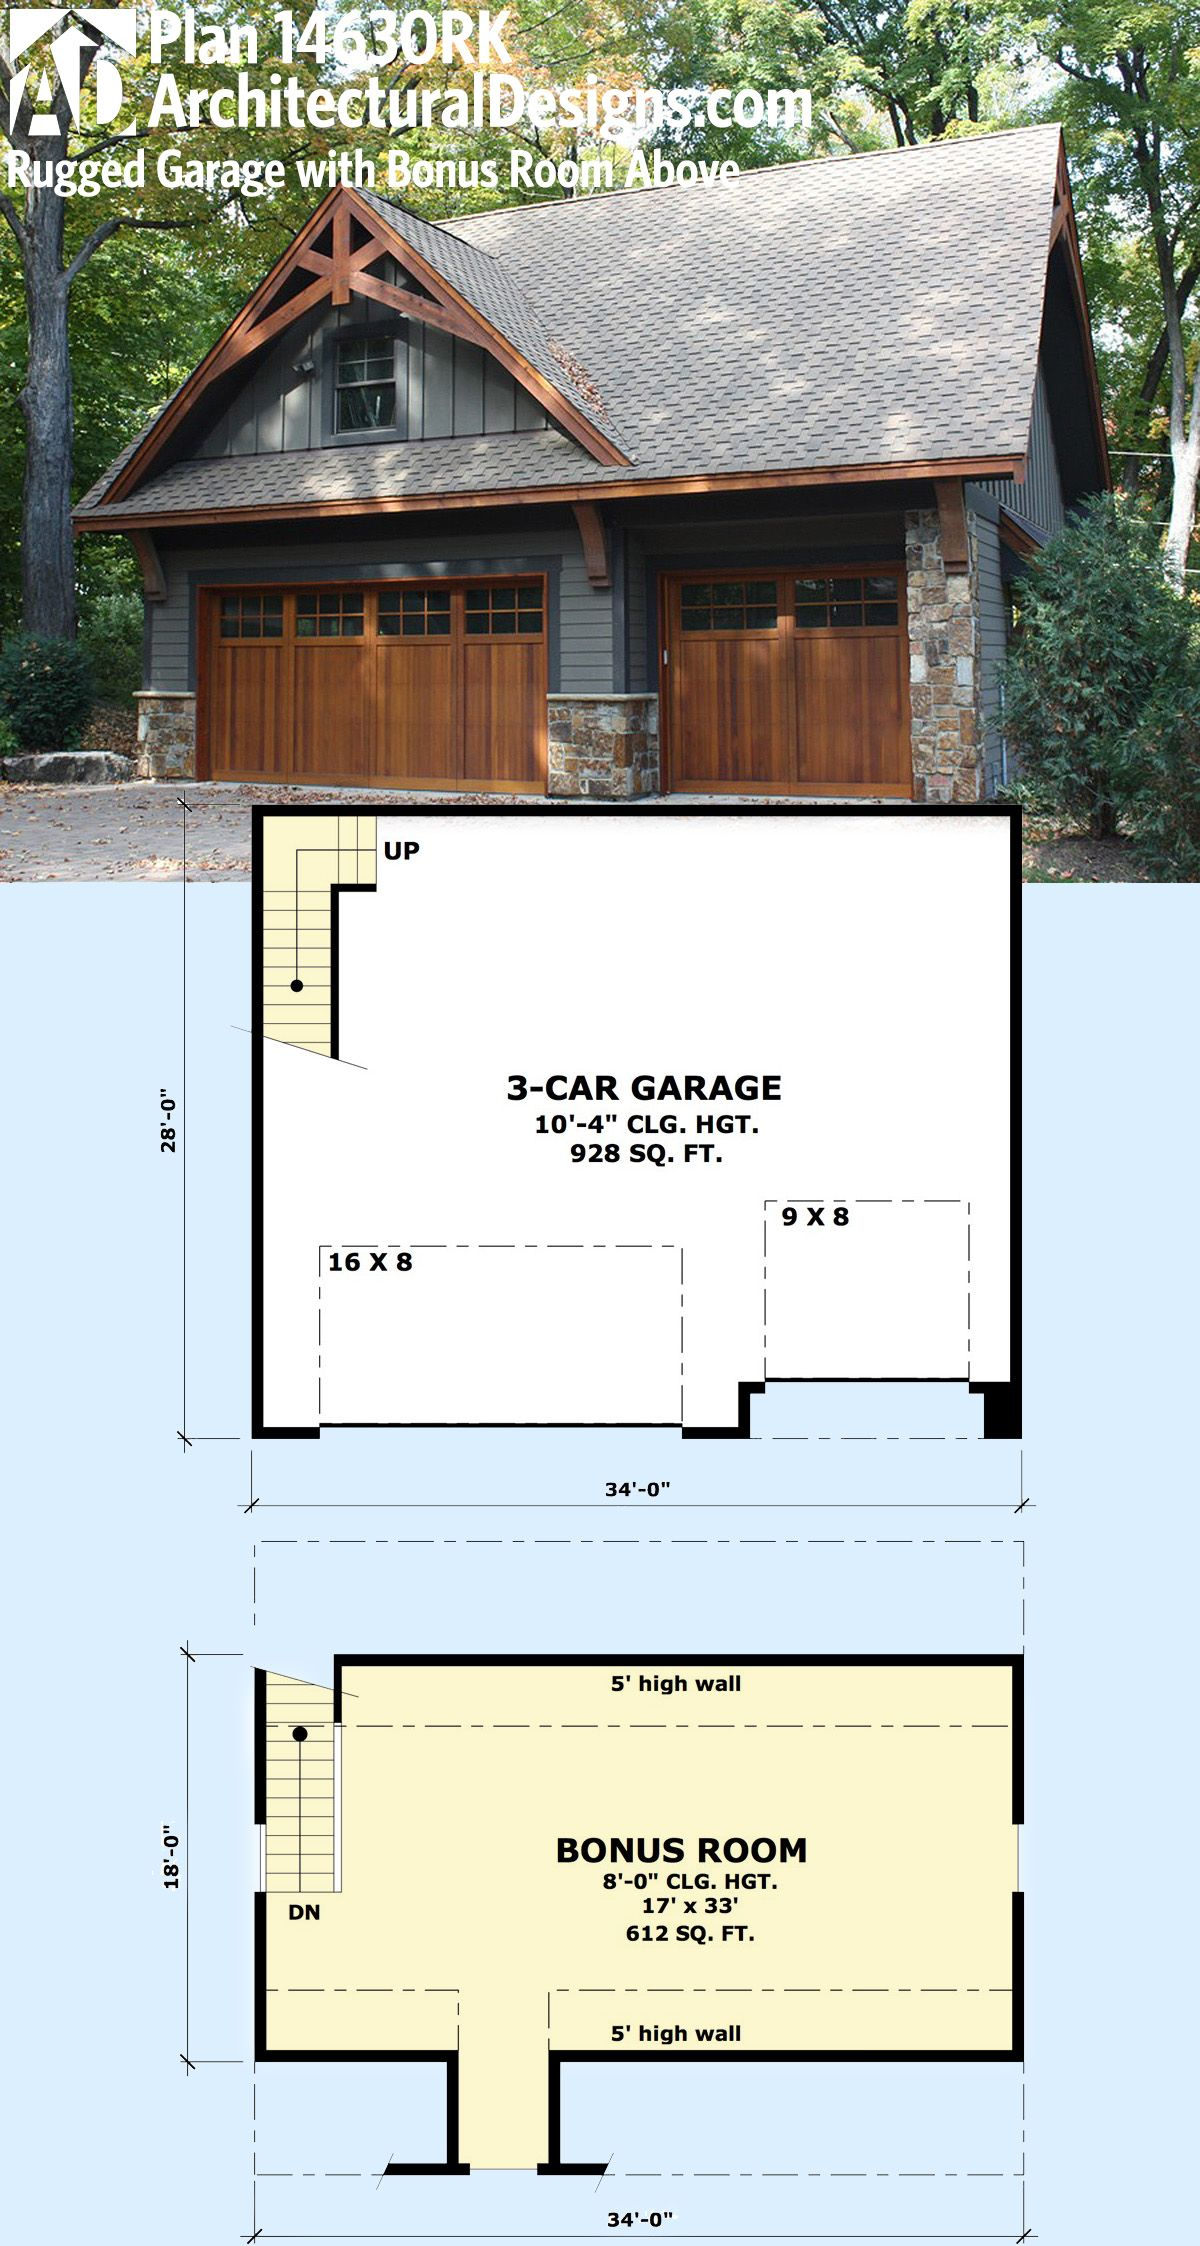 Architectural designs rugged garage plan 14630rk gives you for Room above garage plans